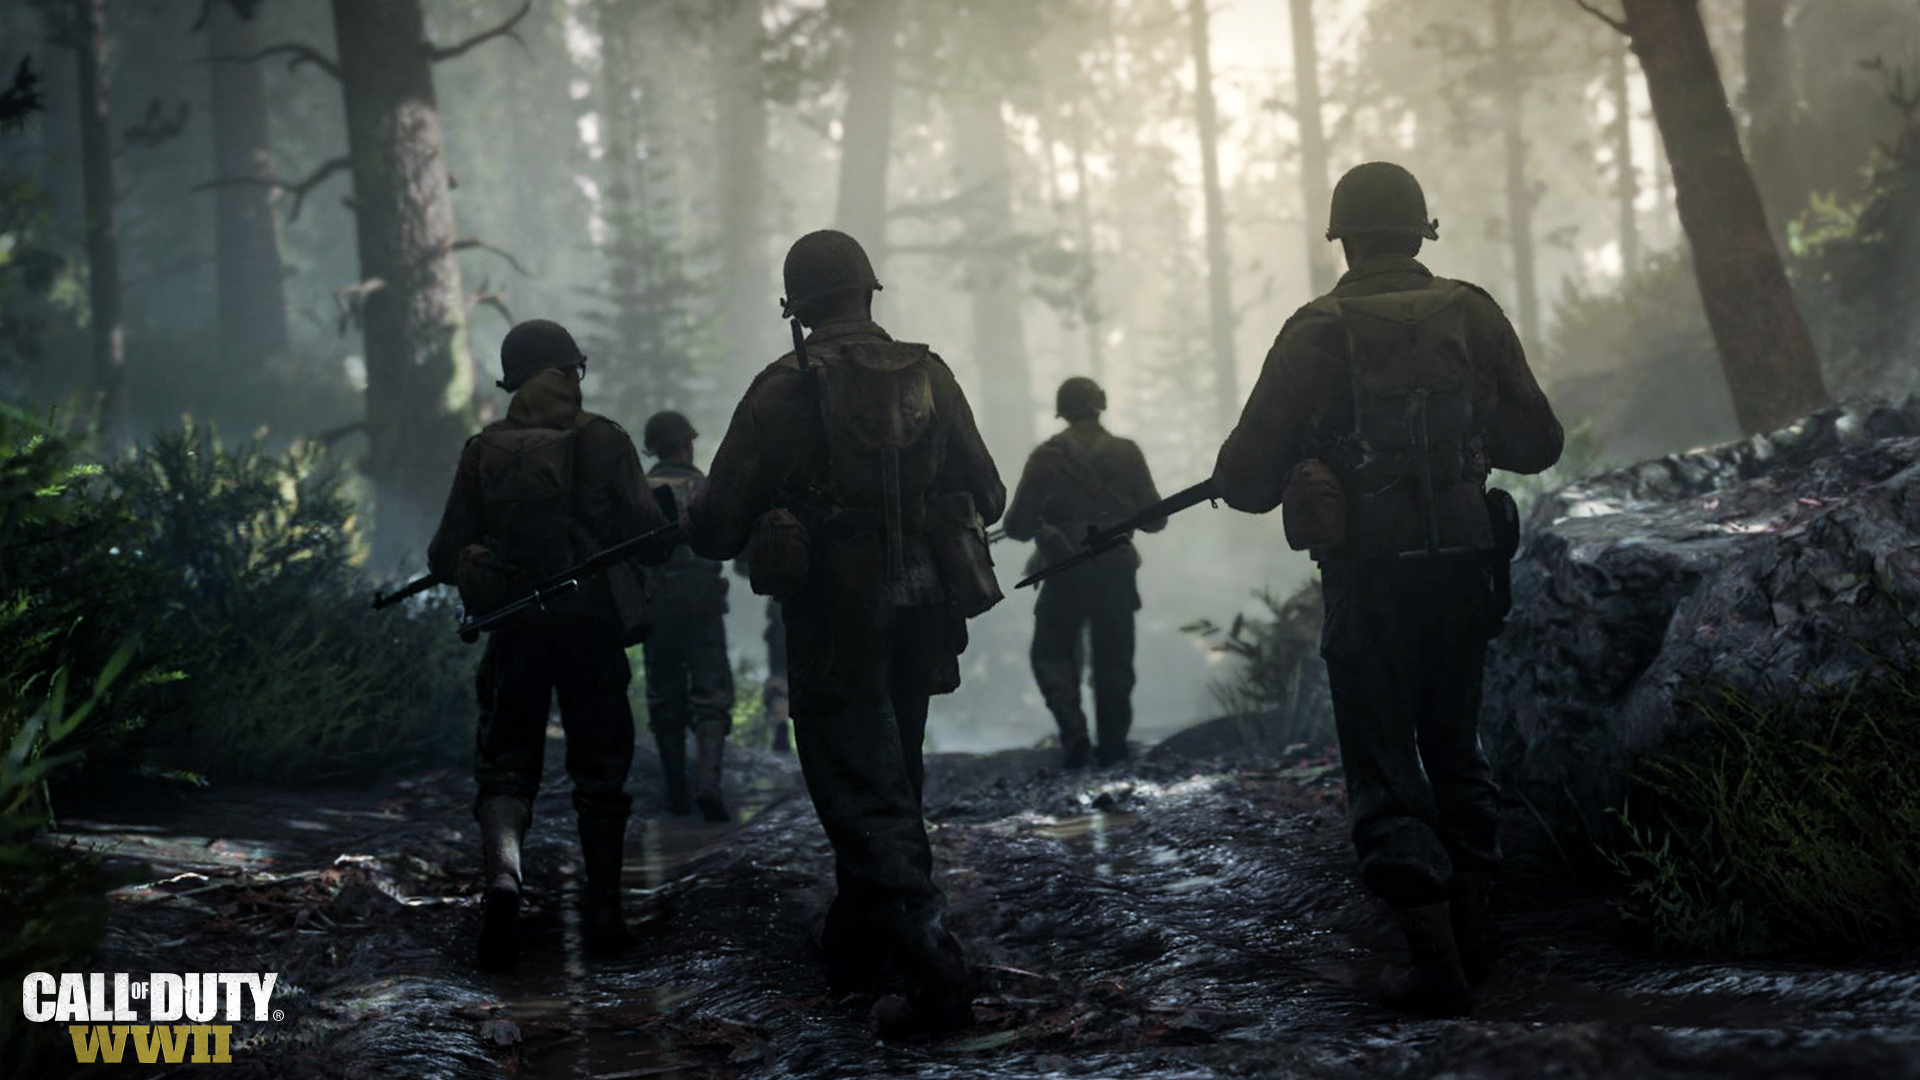 Call-of-Duty-WWII-Forest.jpg